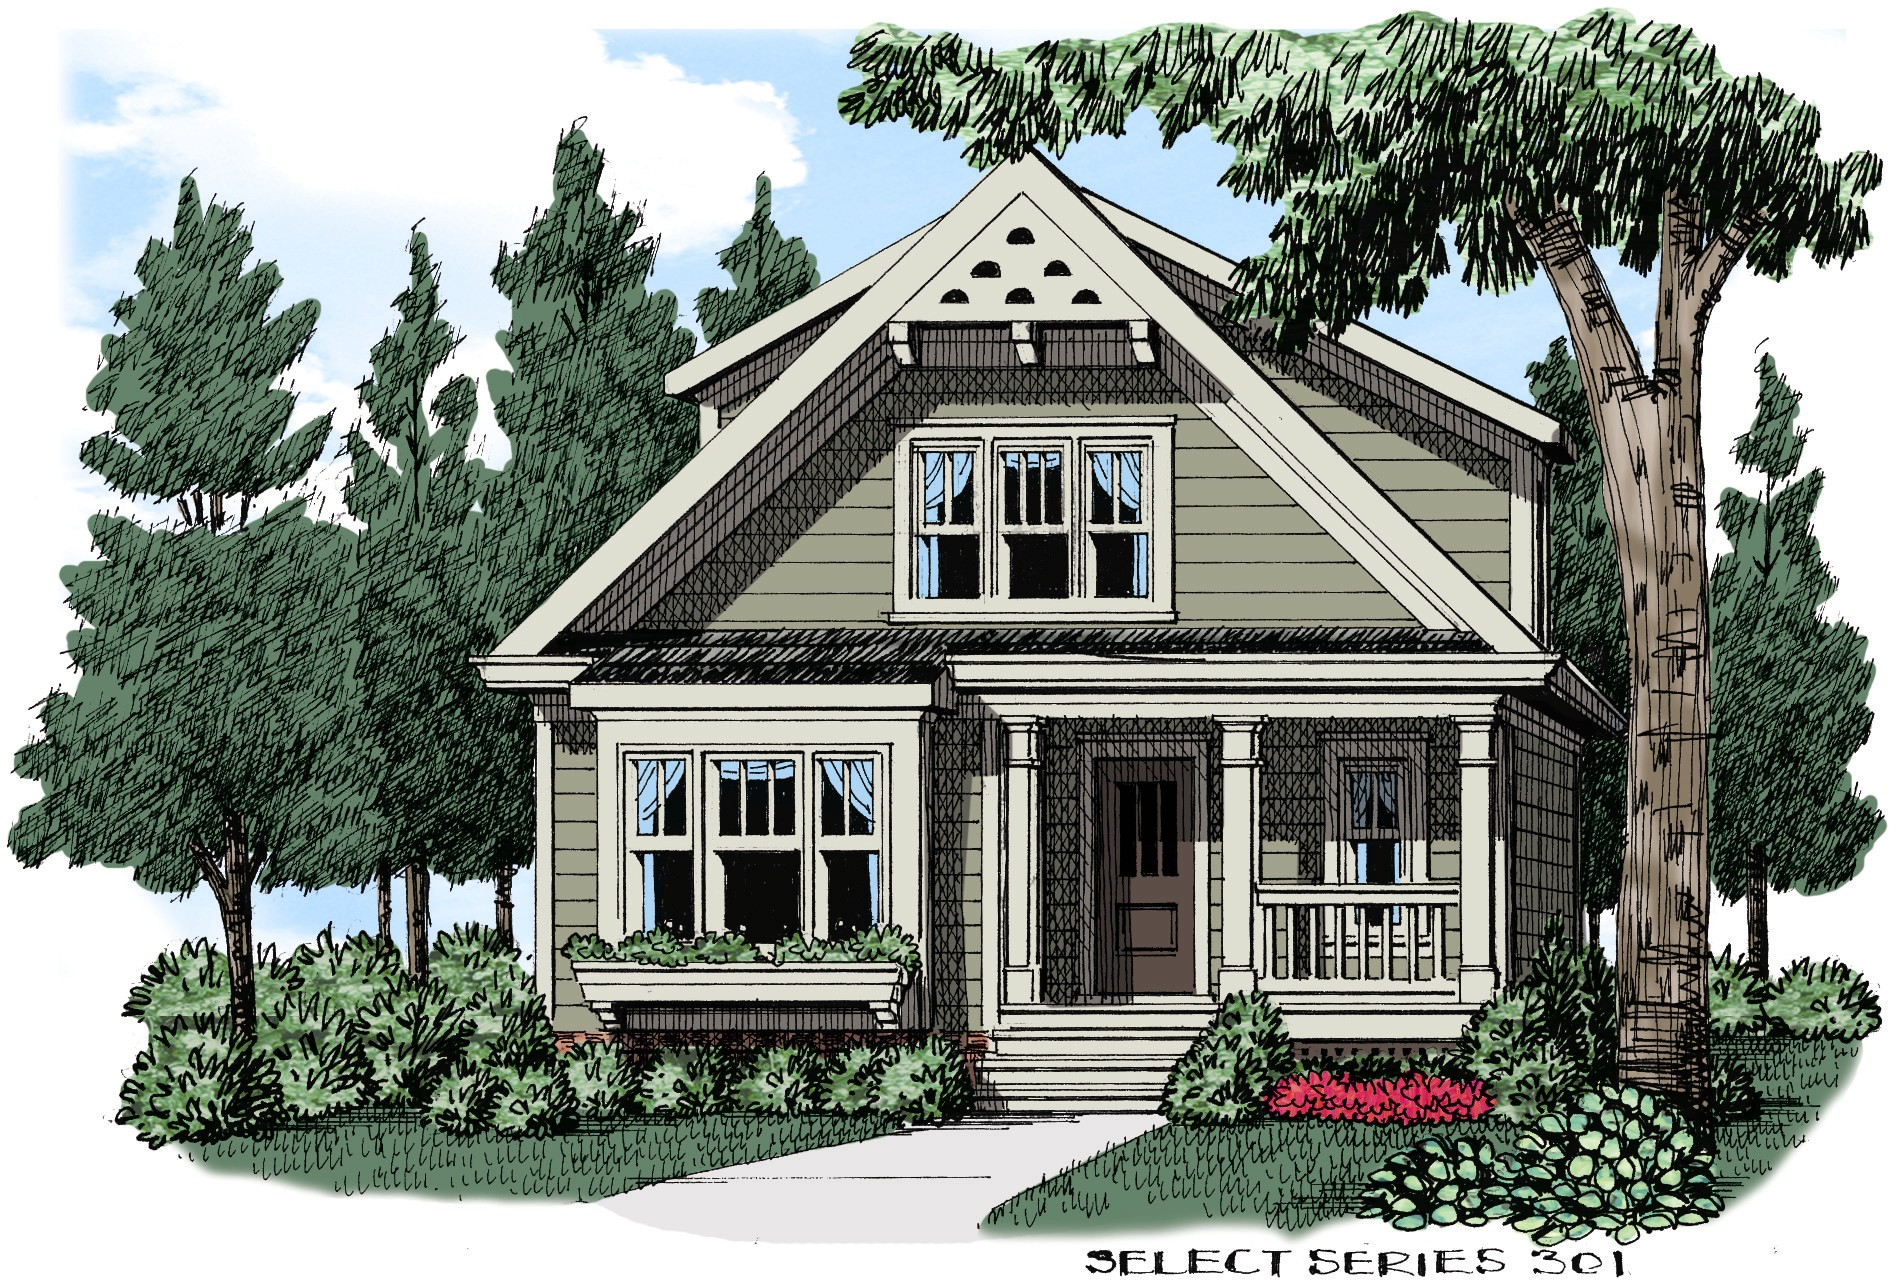 Architectural home plans » ritz craft home plans | Victorian home plans